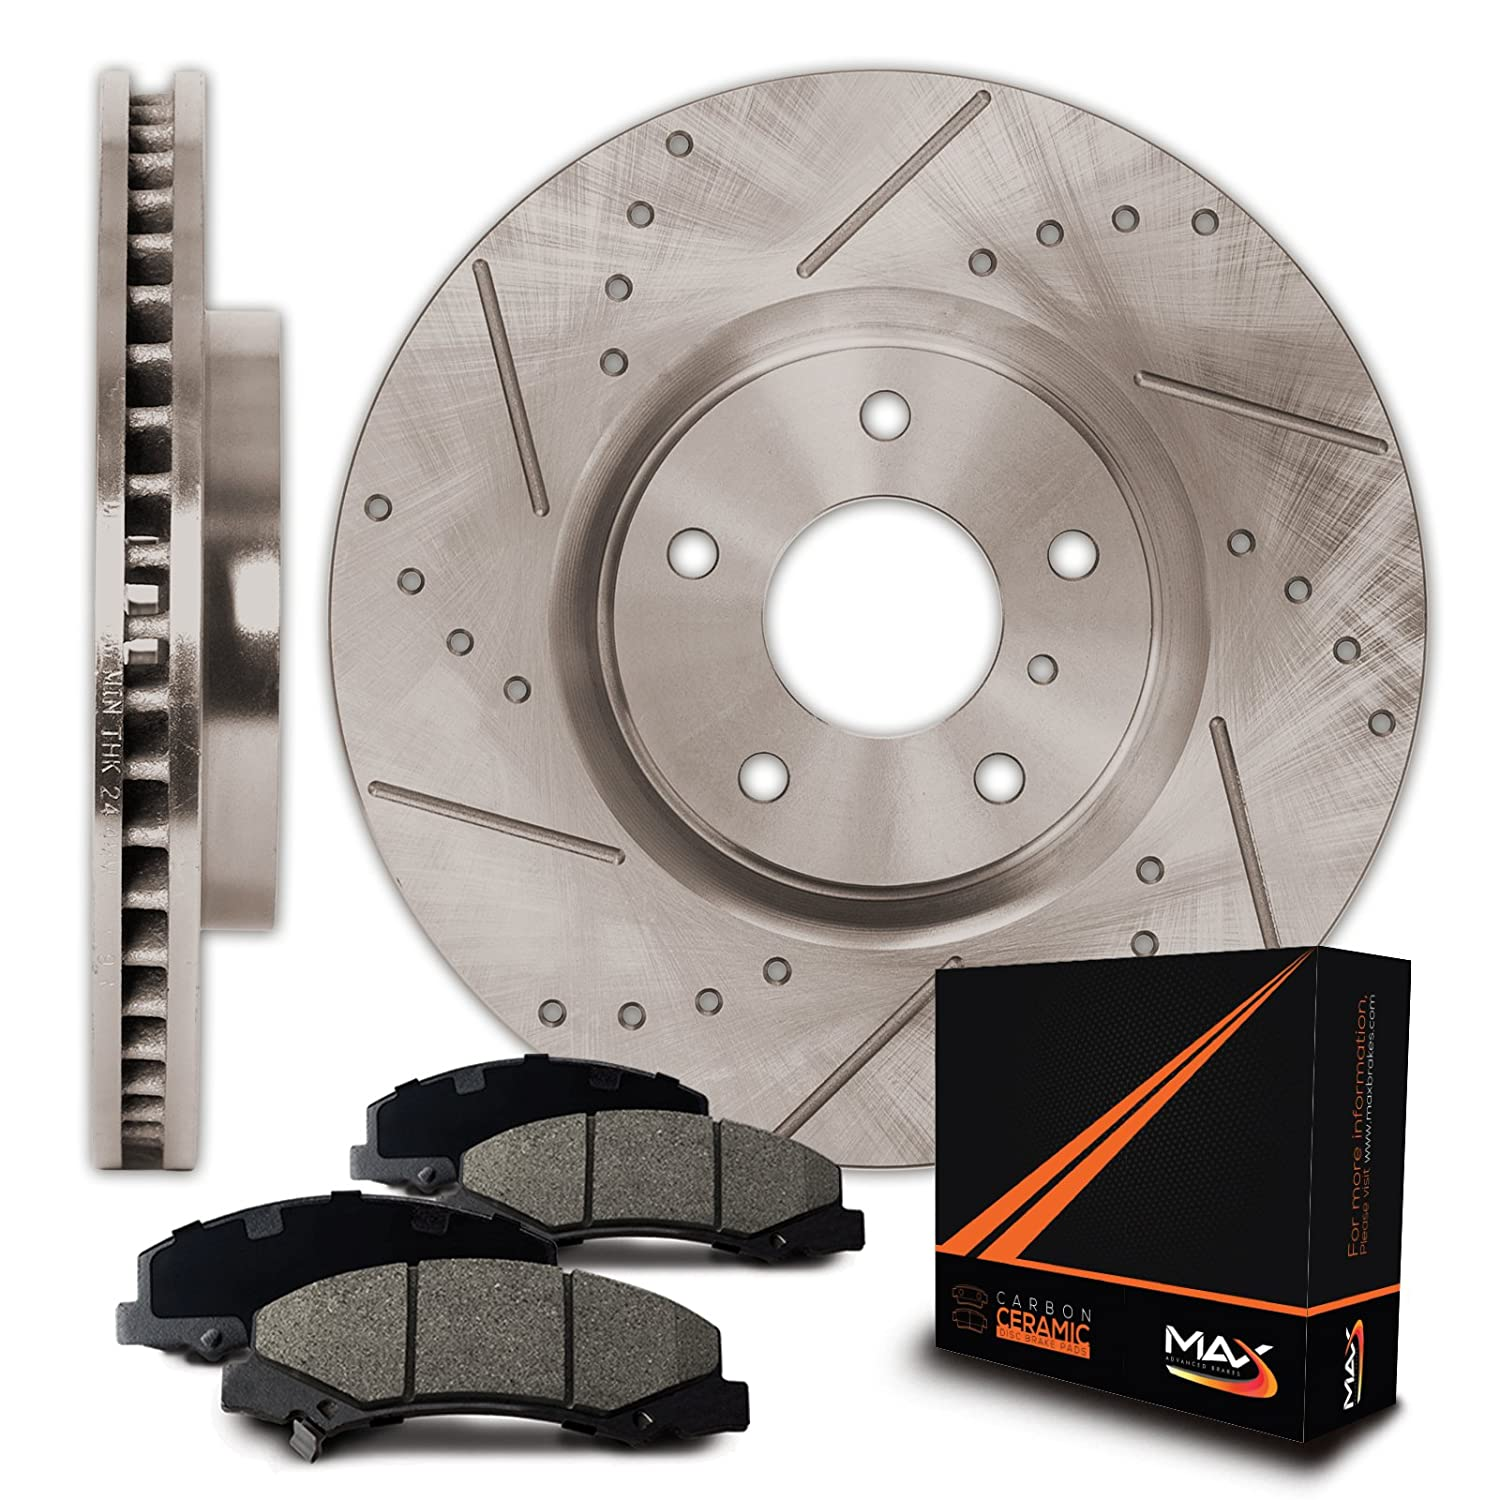 Max Brakes Front Premium Slotted Drilled Rotors w/Ceramic Pads Performance Brake Kit KT048031 | Fits: 2001 01 Subaru Outback; Non Impreza Outback Models Max Advanced Brakes